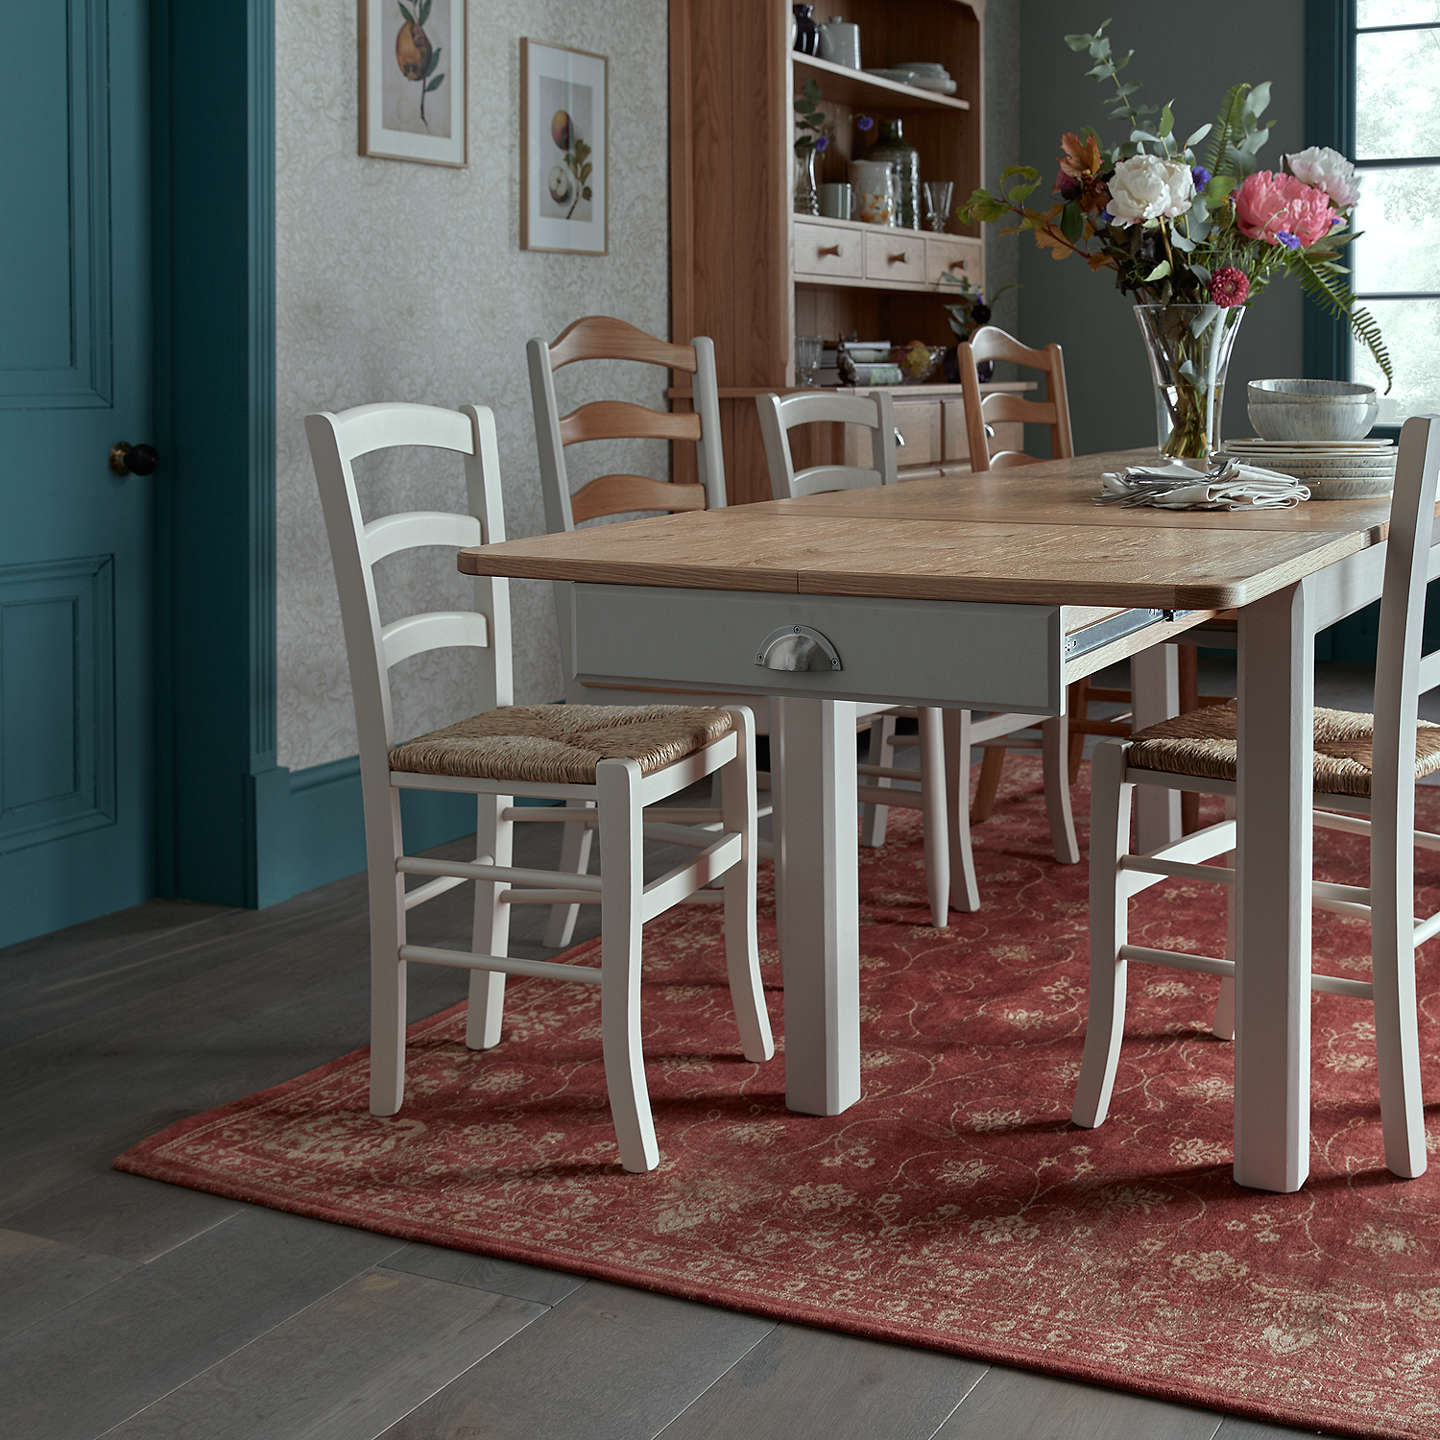 BuyJohn Lewis Audley Dining Chairs Set Of Two Soft Grey Online At Johnlewis